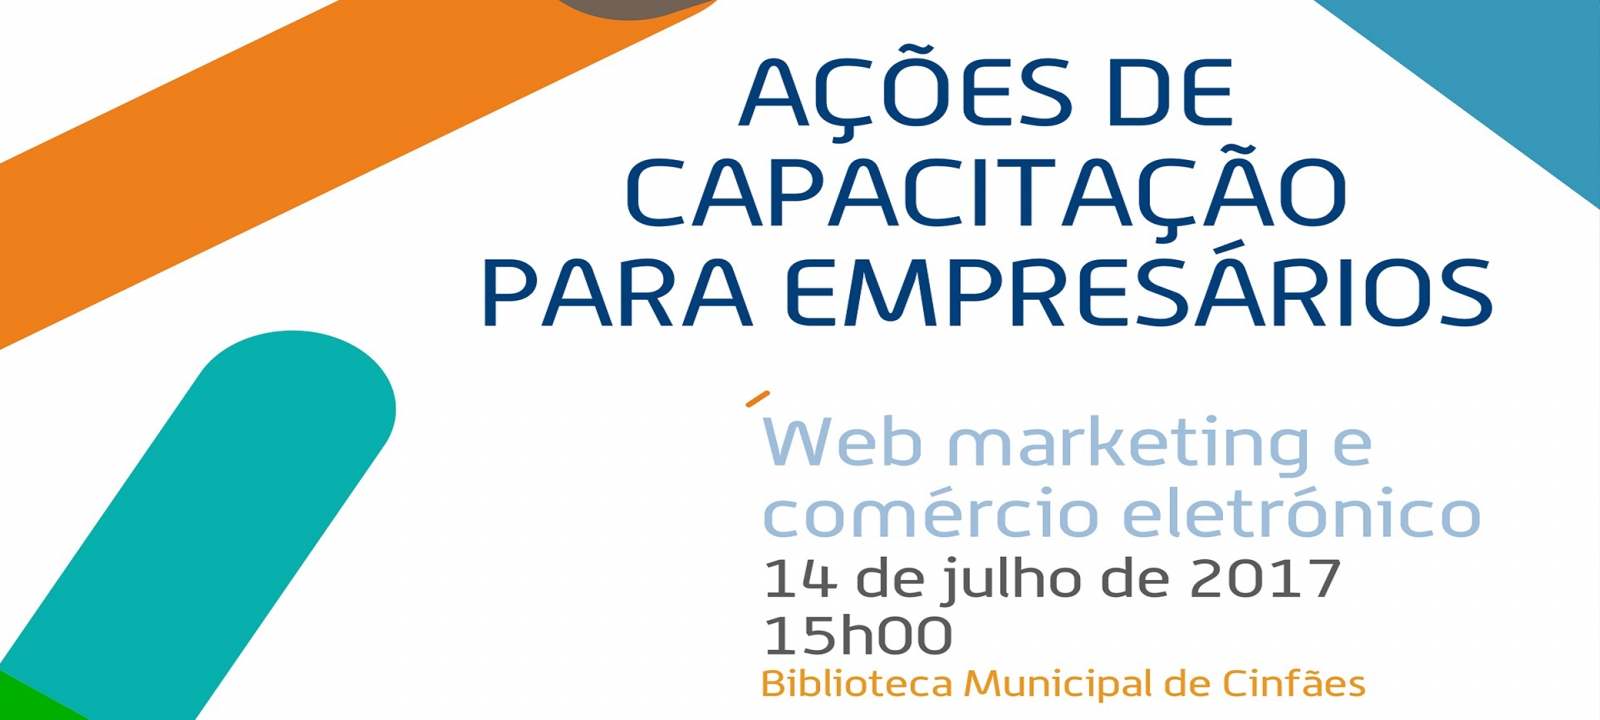 Web marketing e comércio eletrónico